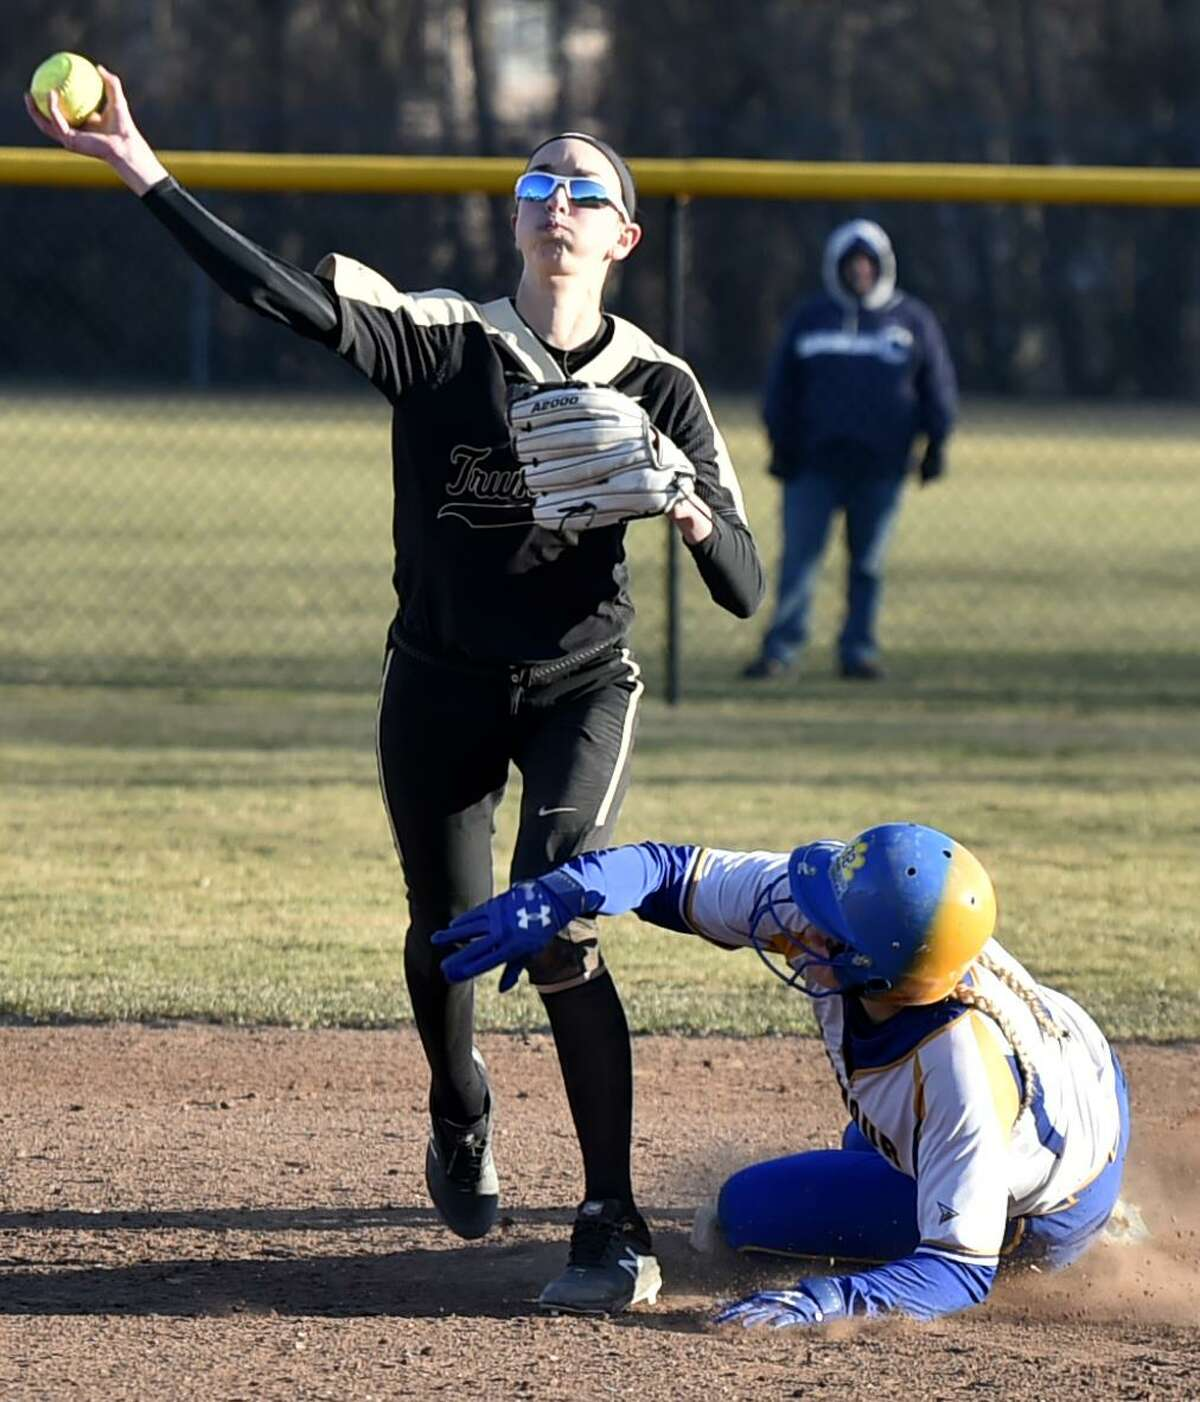 Kenzie Bruggeman, left, and the Trumbull softball team are off to an 8-0 start and are ranked No. 2 in the latest top 10 poll.